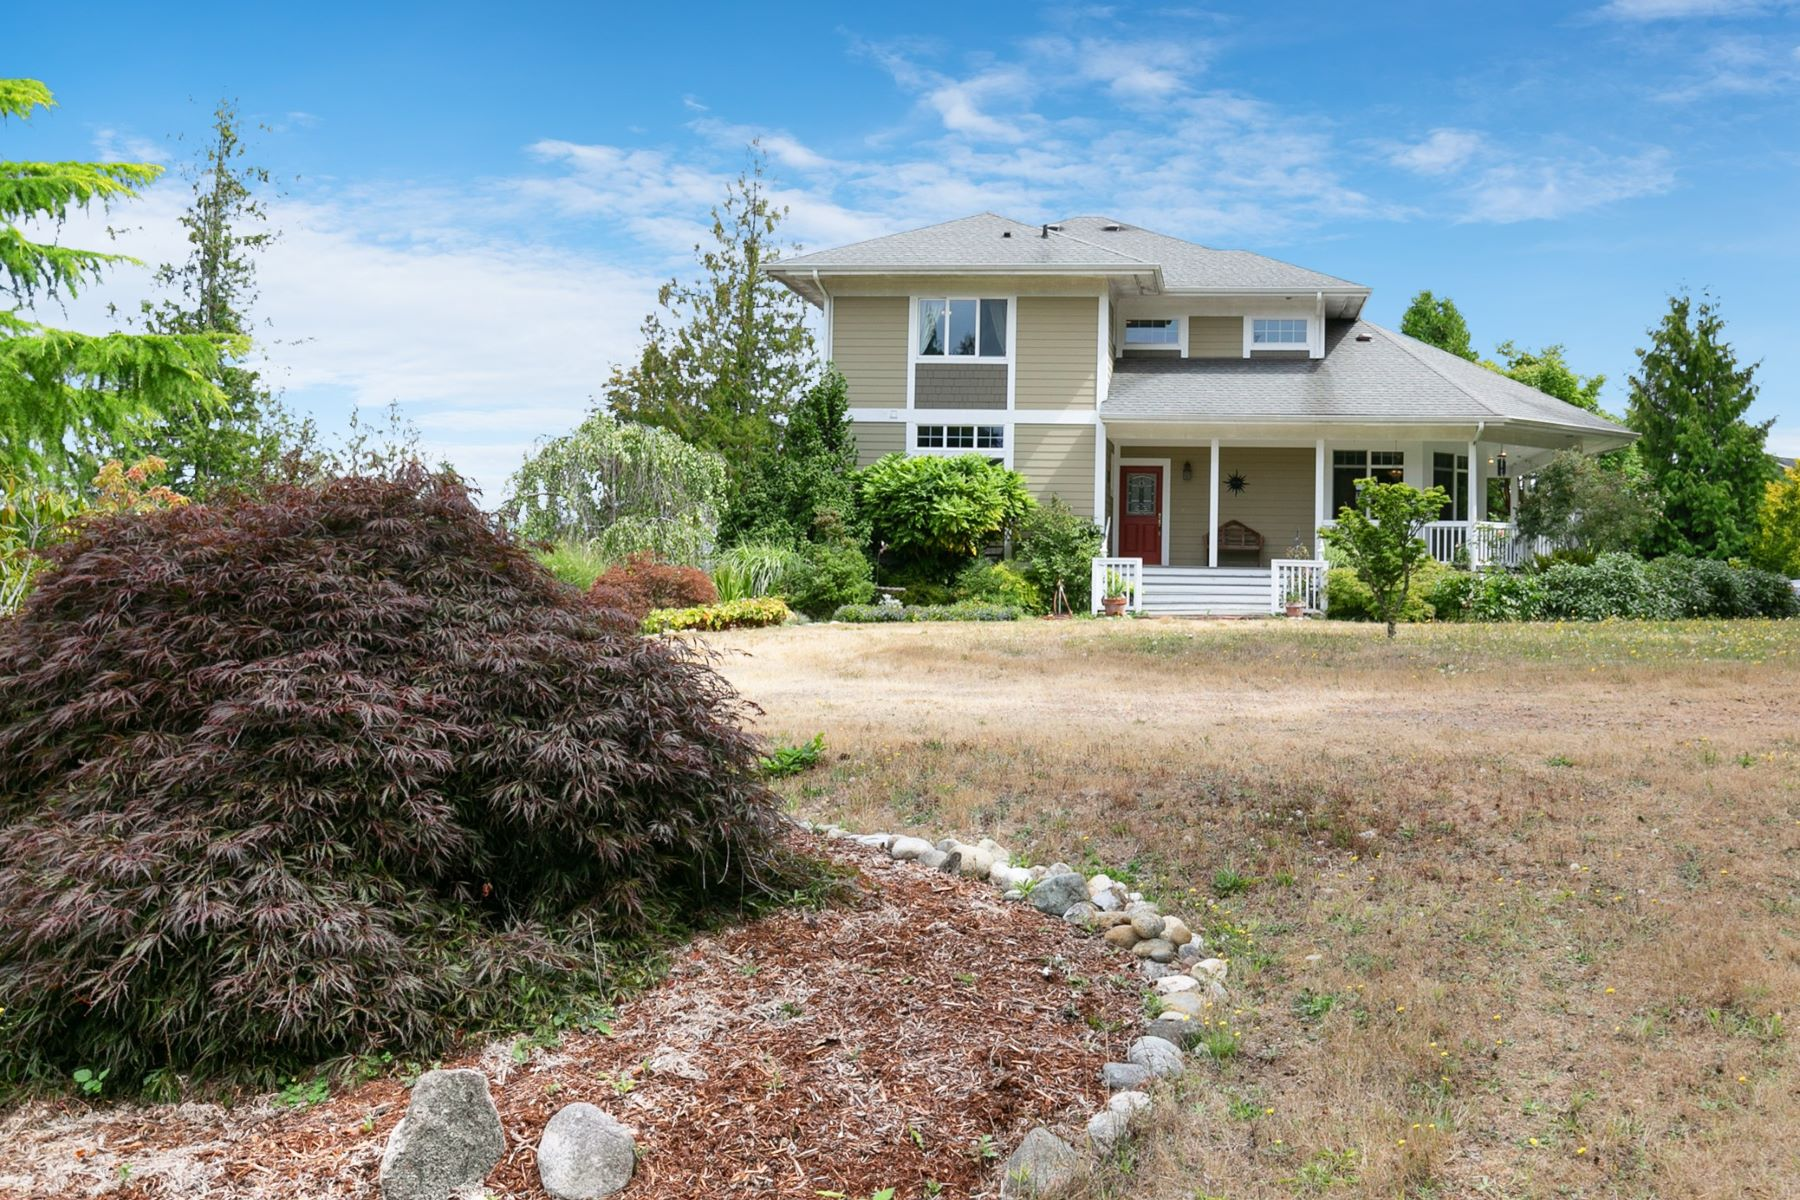 Single Family Homes for Sale at Camano Island Retreat 342 Echo Ridge Way Camano Island, Washington 98282 United States